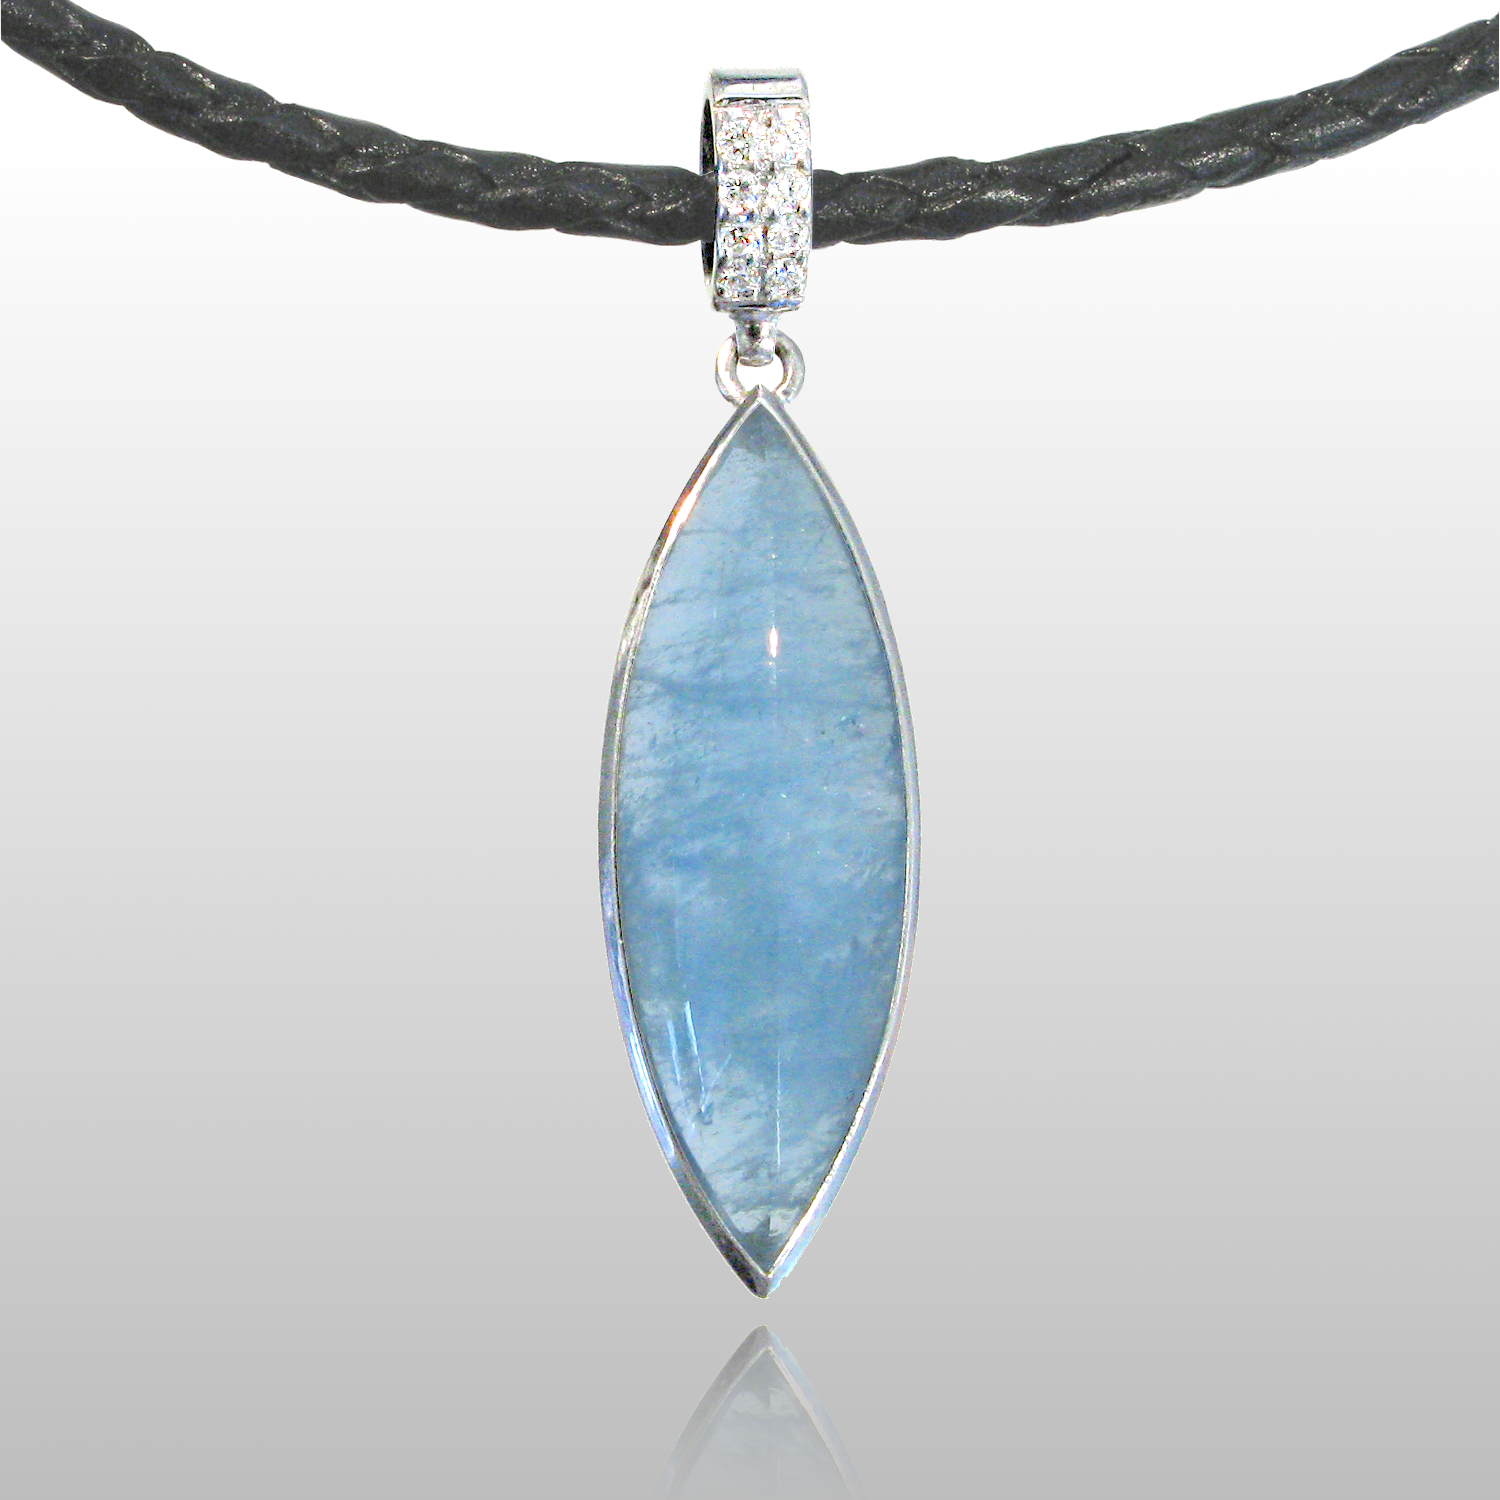 Aquamarine Pendant with Diamonds in 18k White Gold from the Spectrum Collection by Pratima Design Fine Art Jewelry